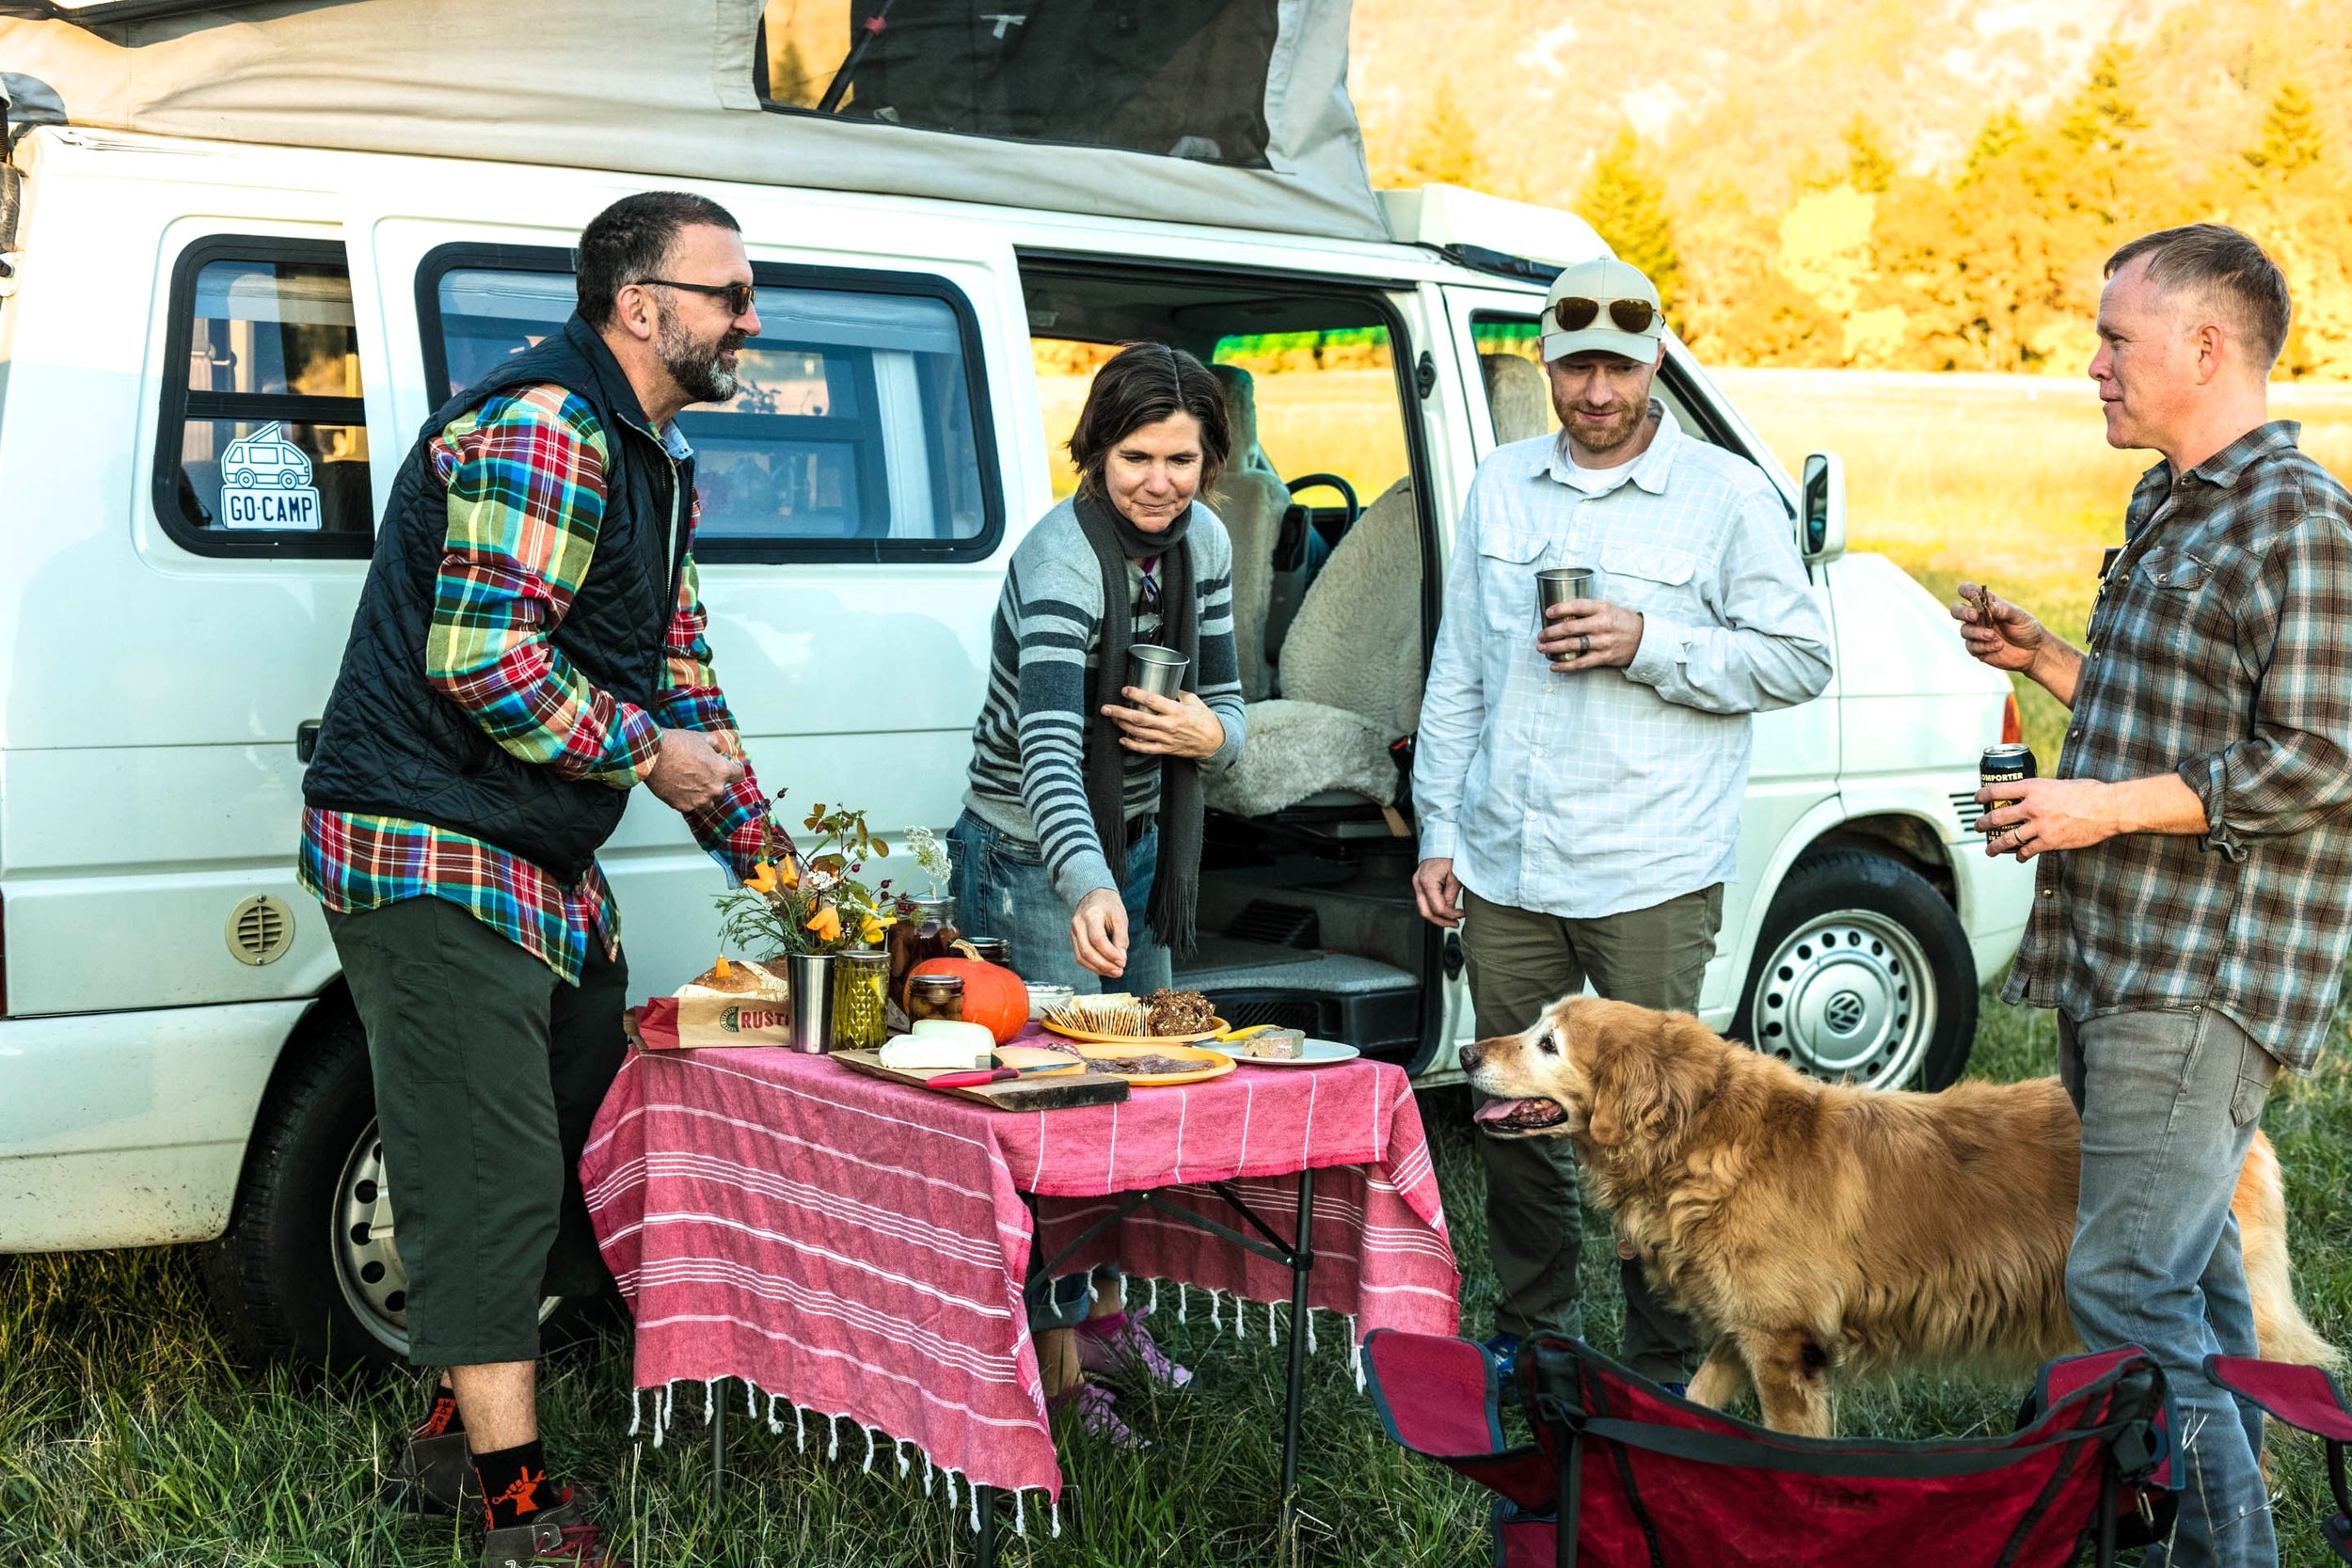 STEP 5: INVITE FRIENDS.  Reserve several vans or tag along with your friends that own vans. (They've been doing #Vansgiving without you for years.) Also, many GoCamp vans allow four-legged friends.